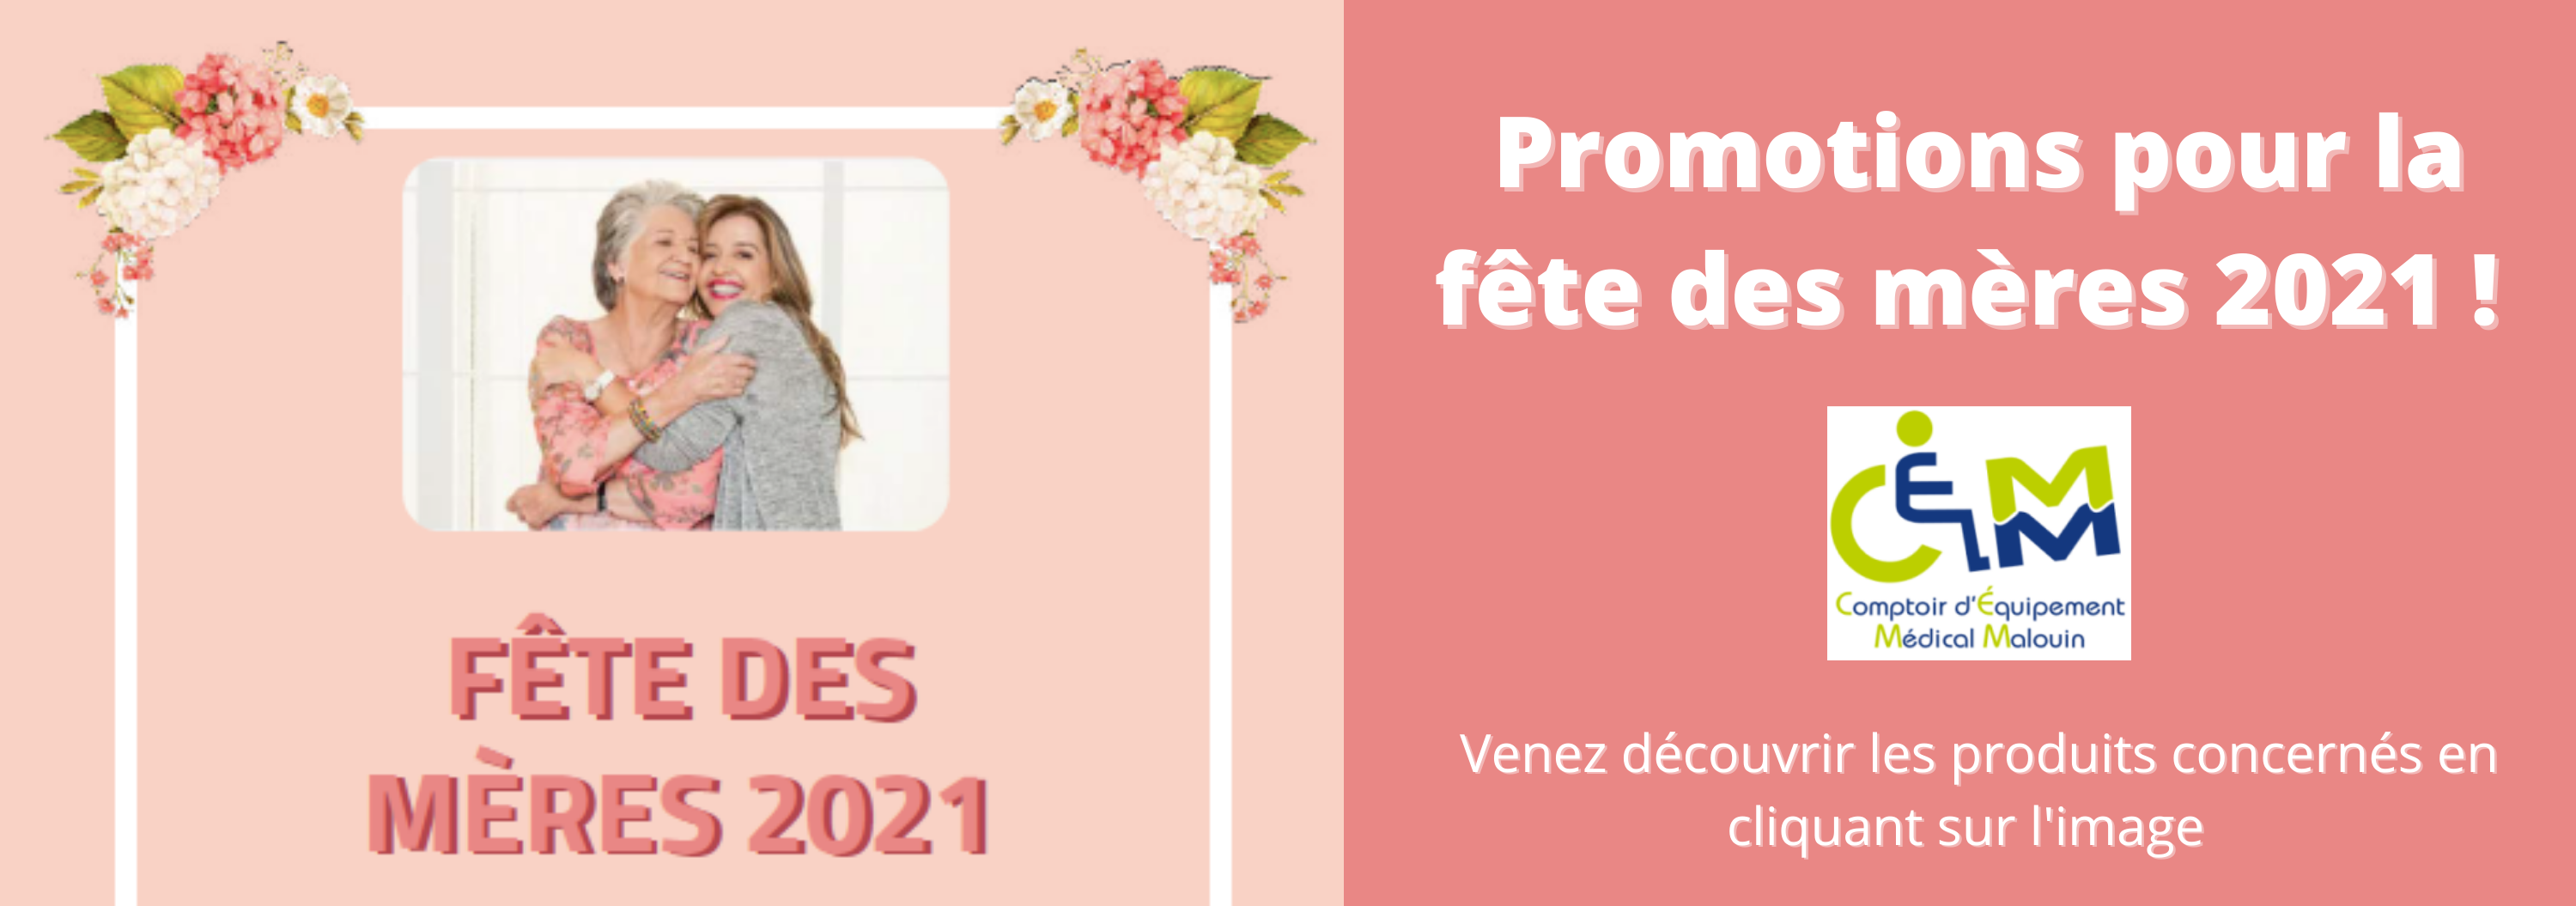 Profitez de promotions exclusives !